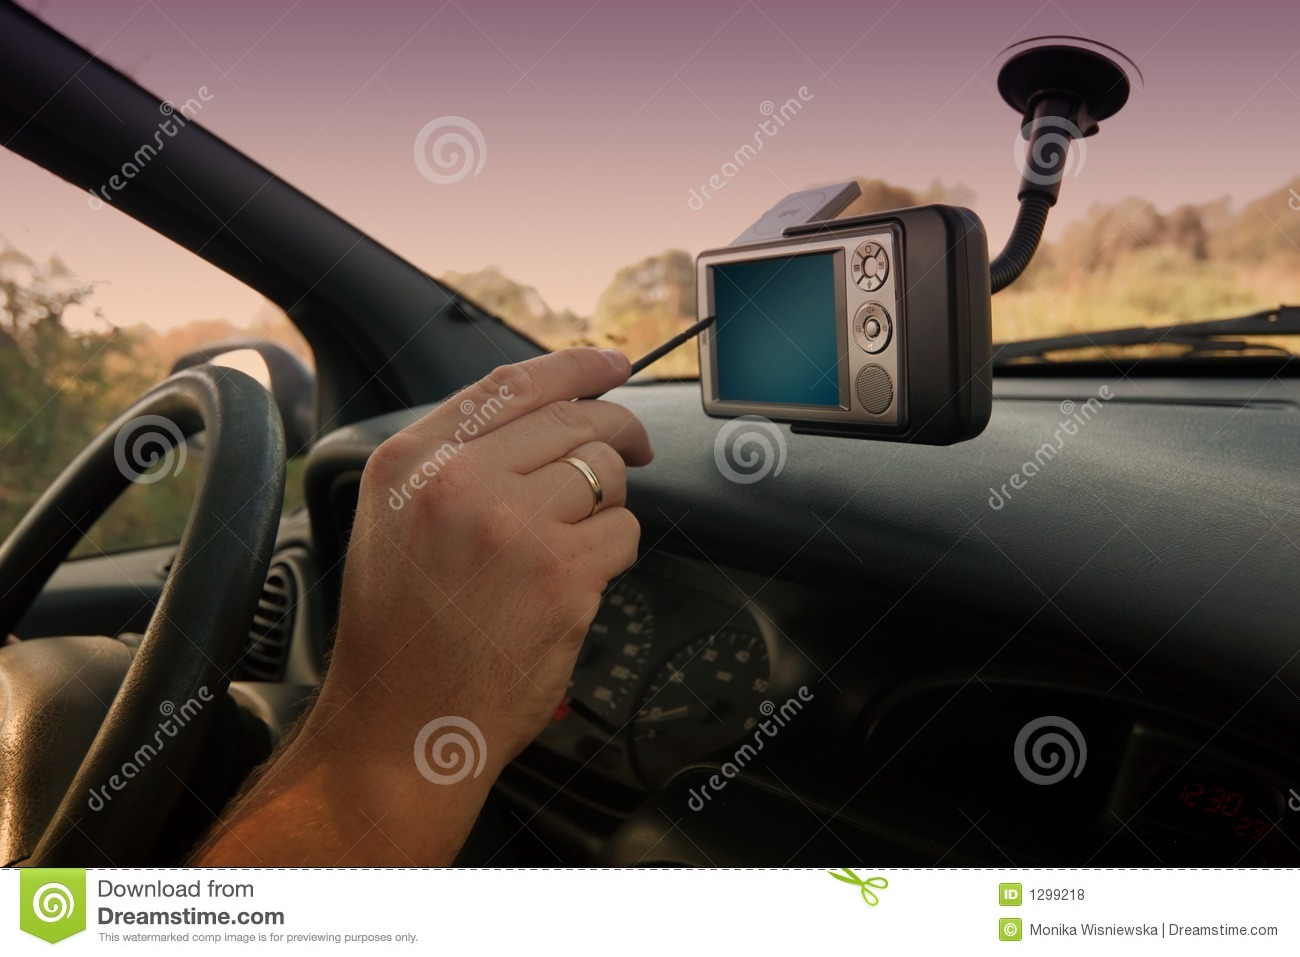 GPS - Finding The Right Way